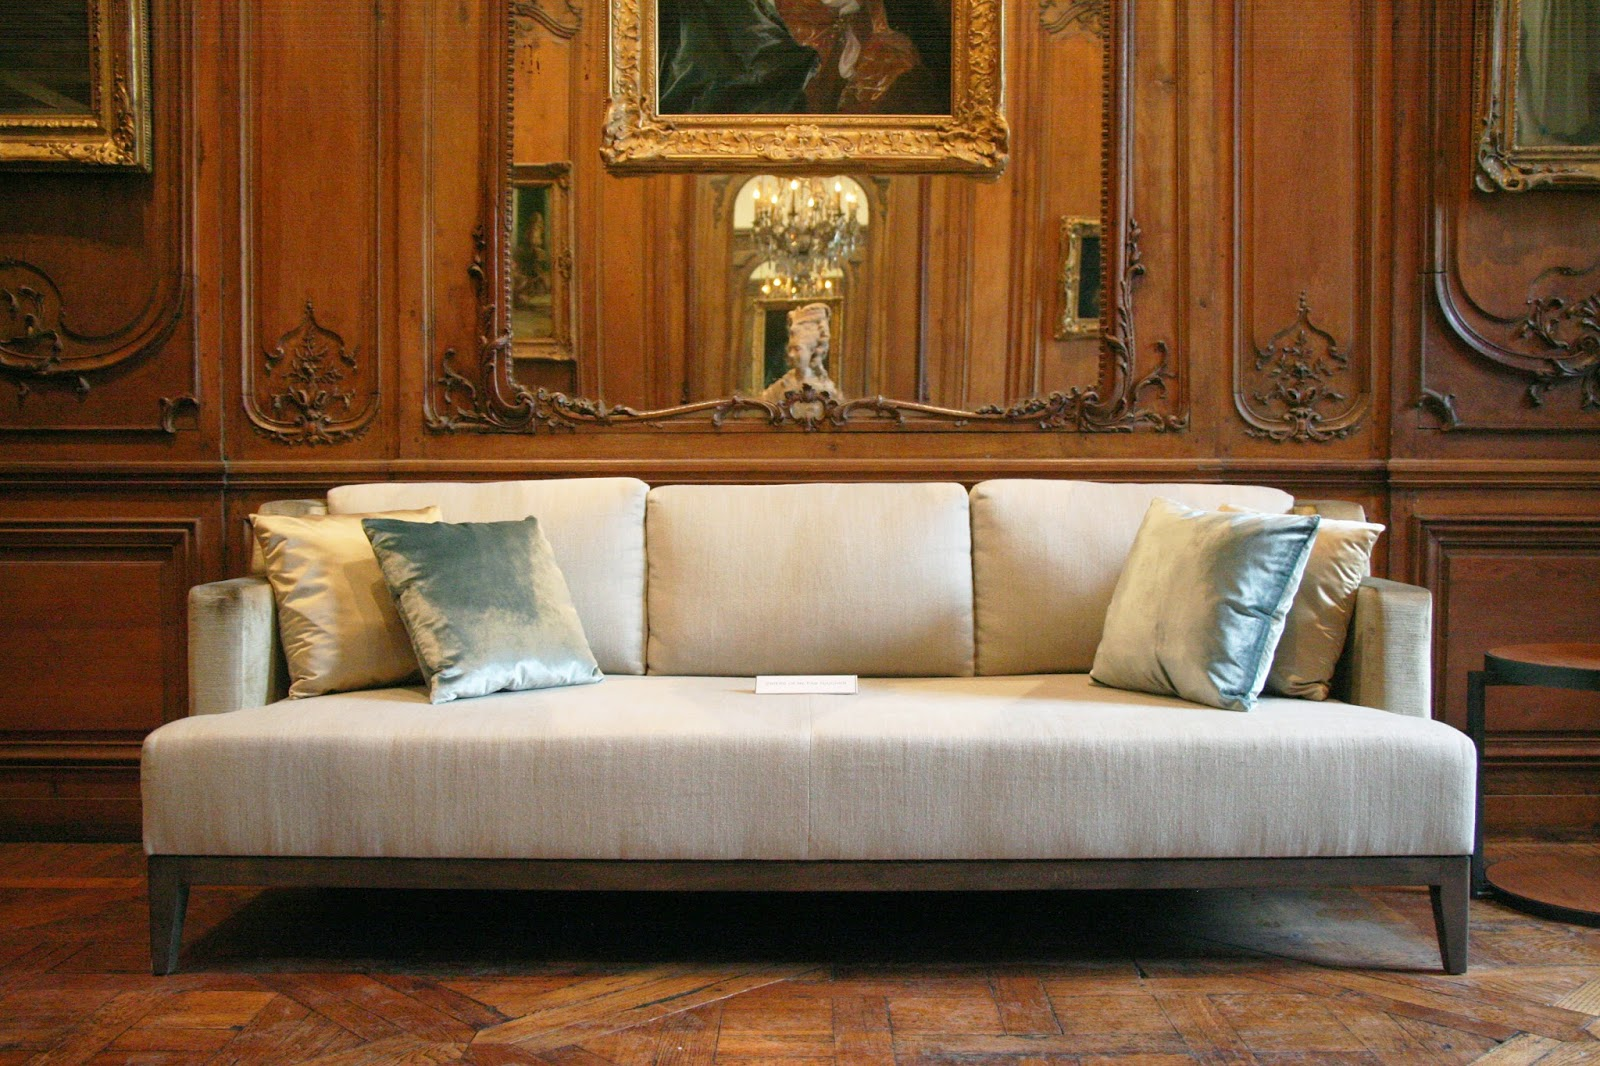 Entr e to black paris elliott barnes at the mus e carnavalet - Canape poltrone et sofa ...